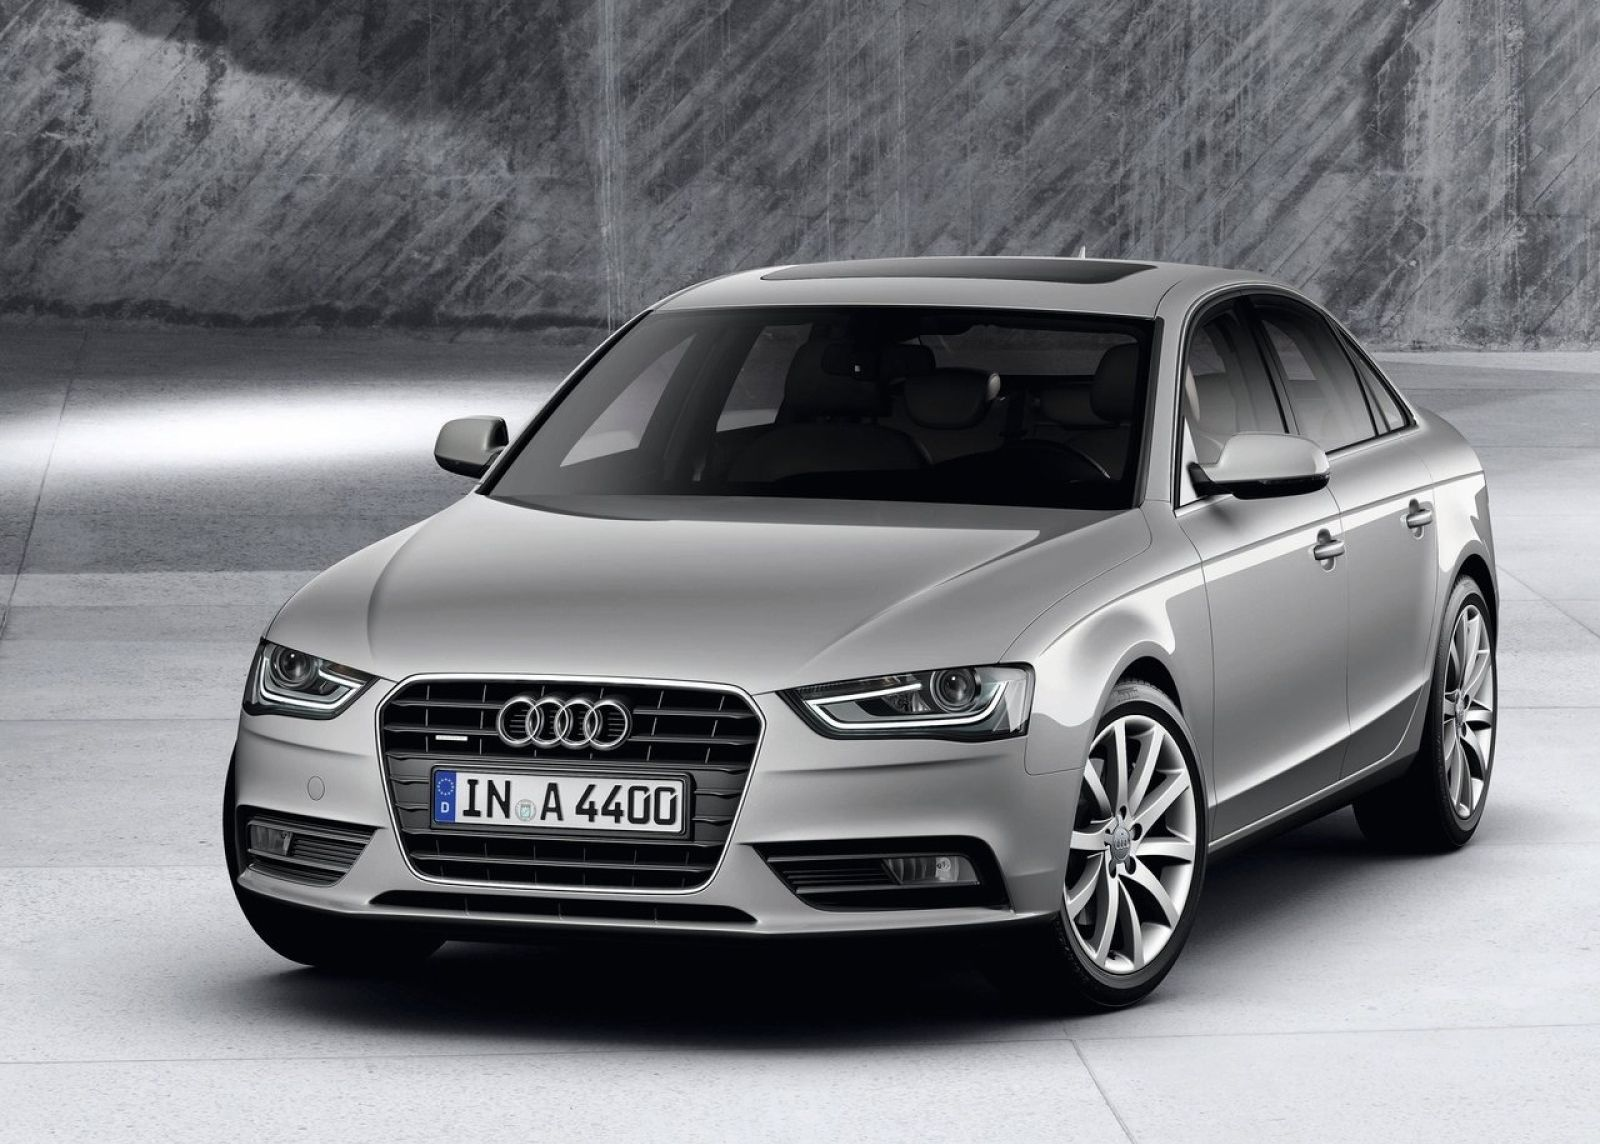 Audi a4 hd wallpapers get free top quality audi a4 hd wallpapers for your desktop